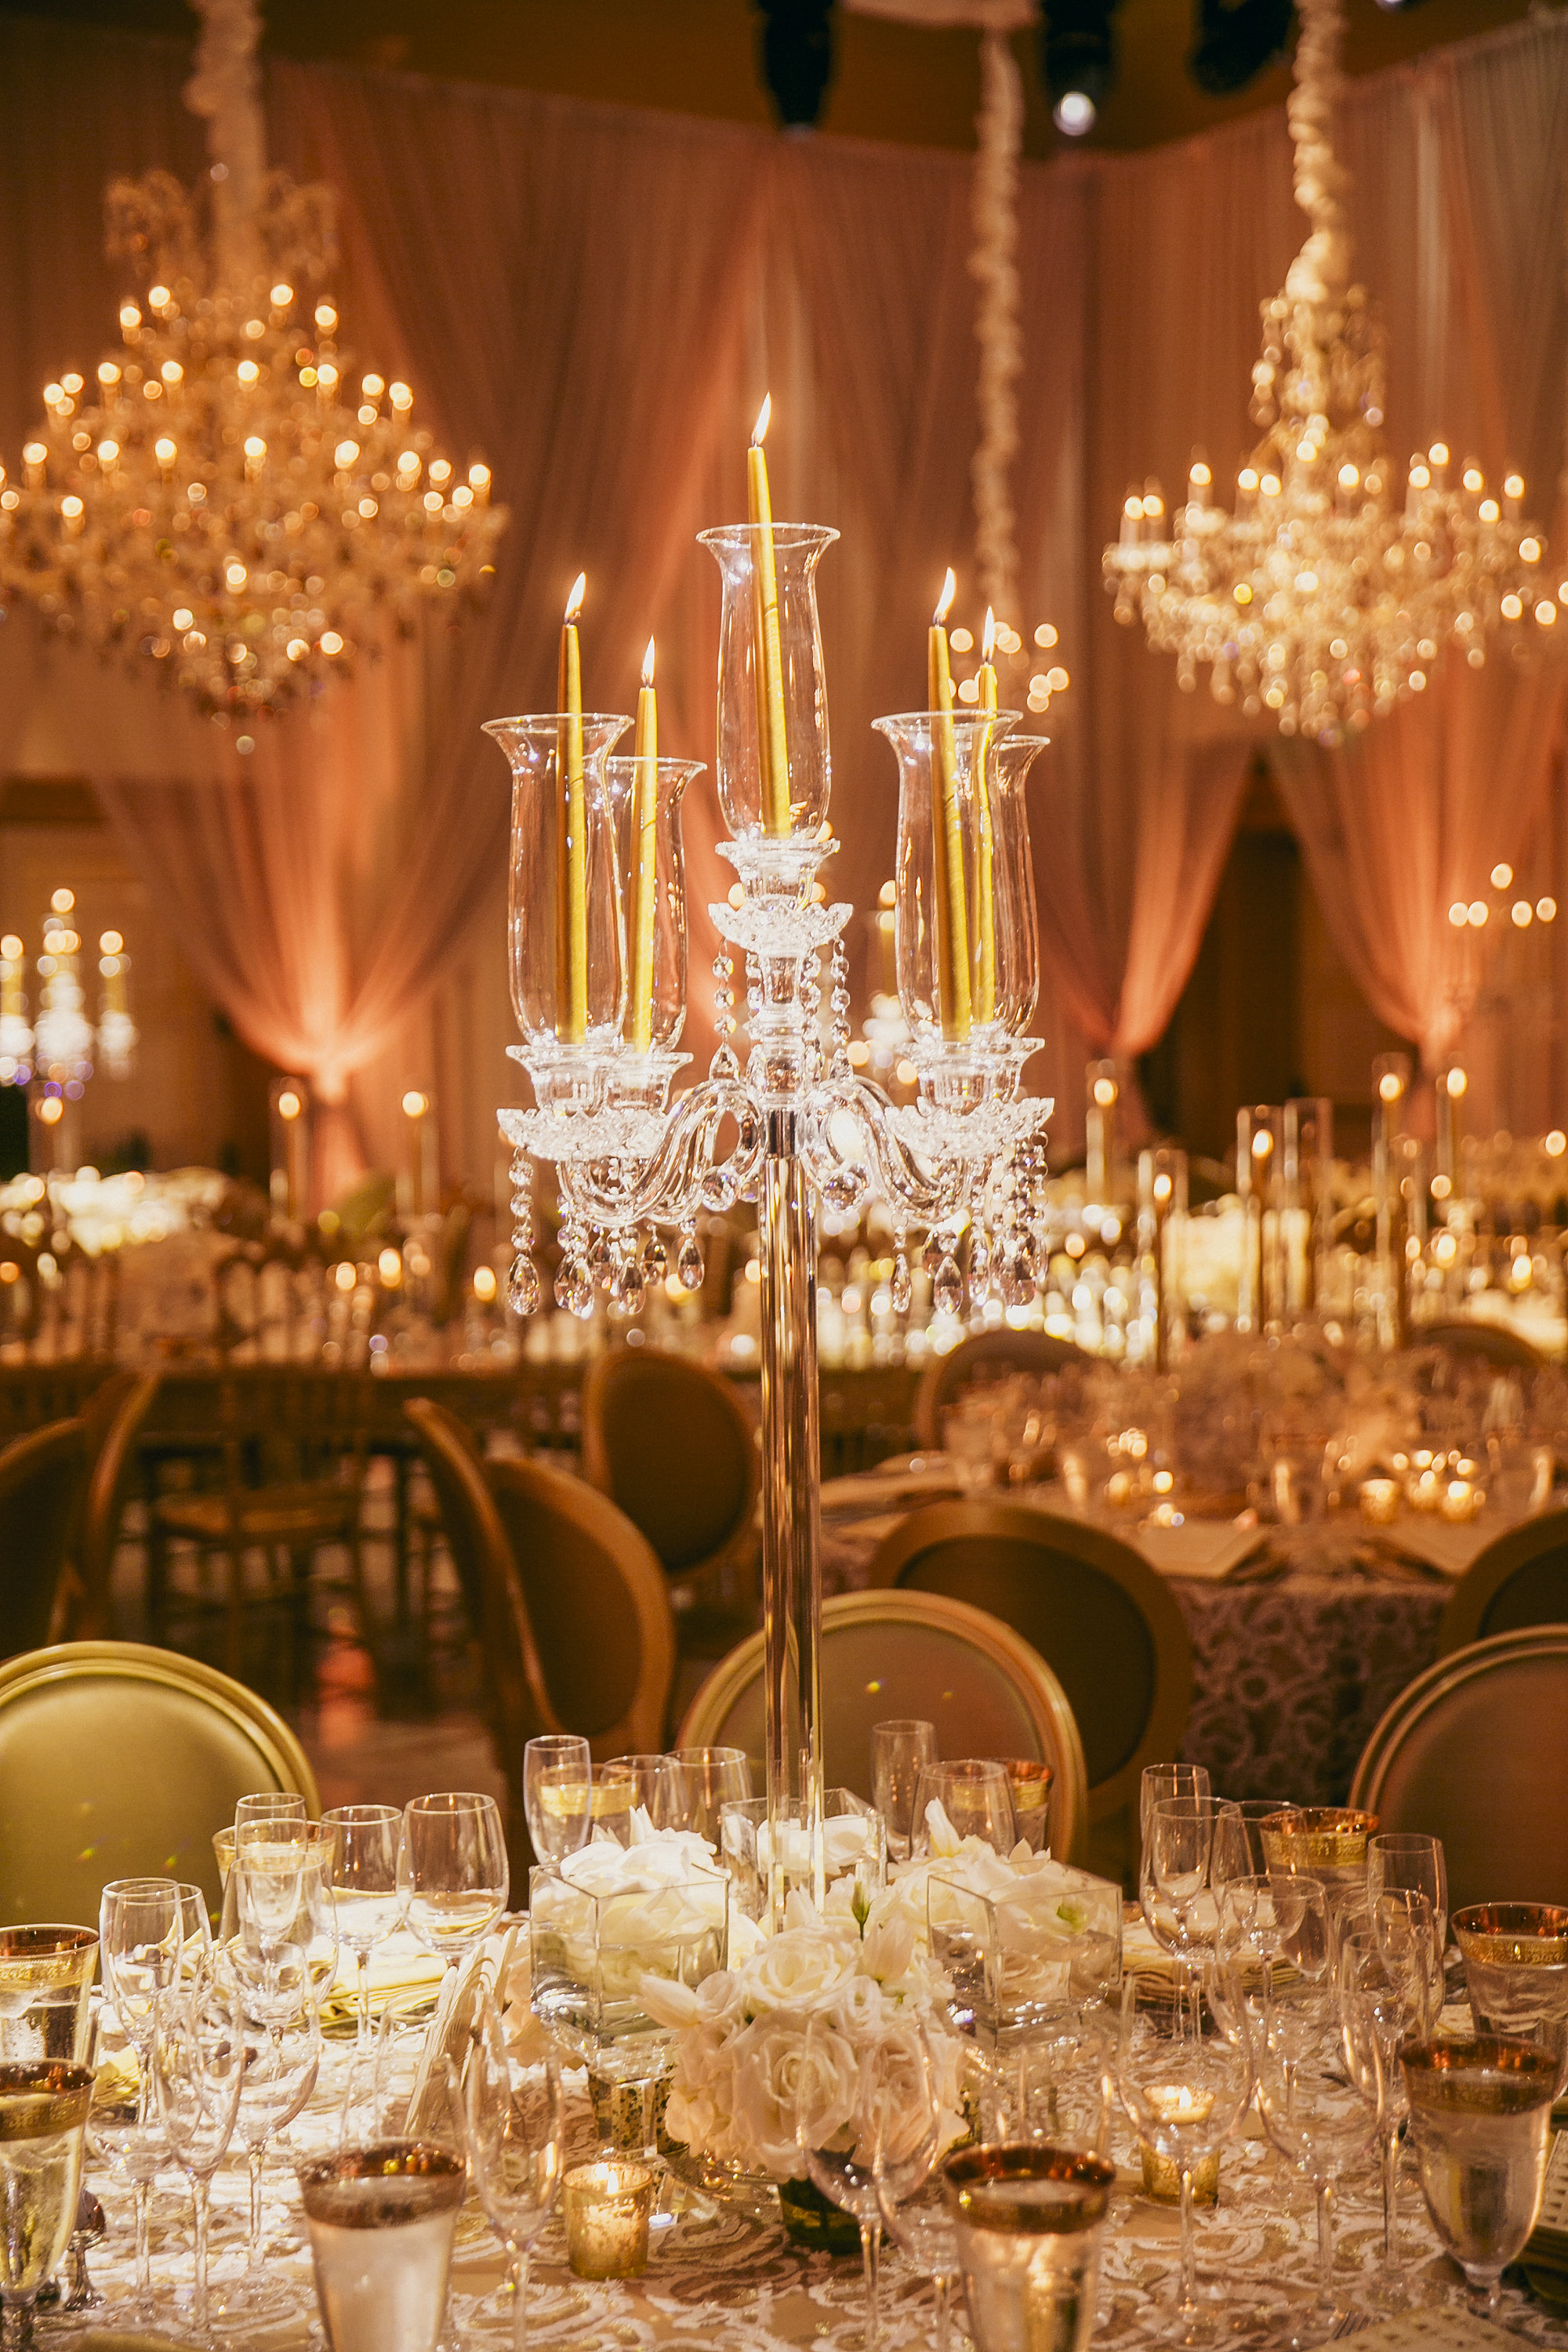 Event Sparkles with Chandeliers - Signature Chandeliers